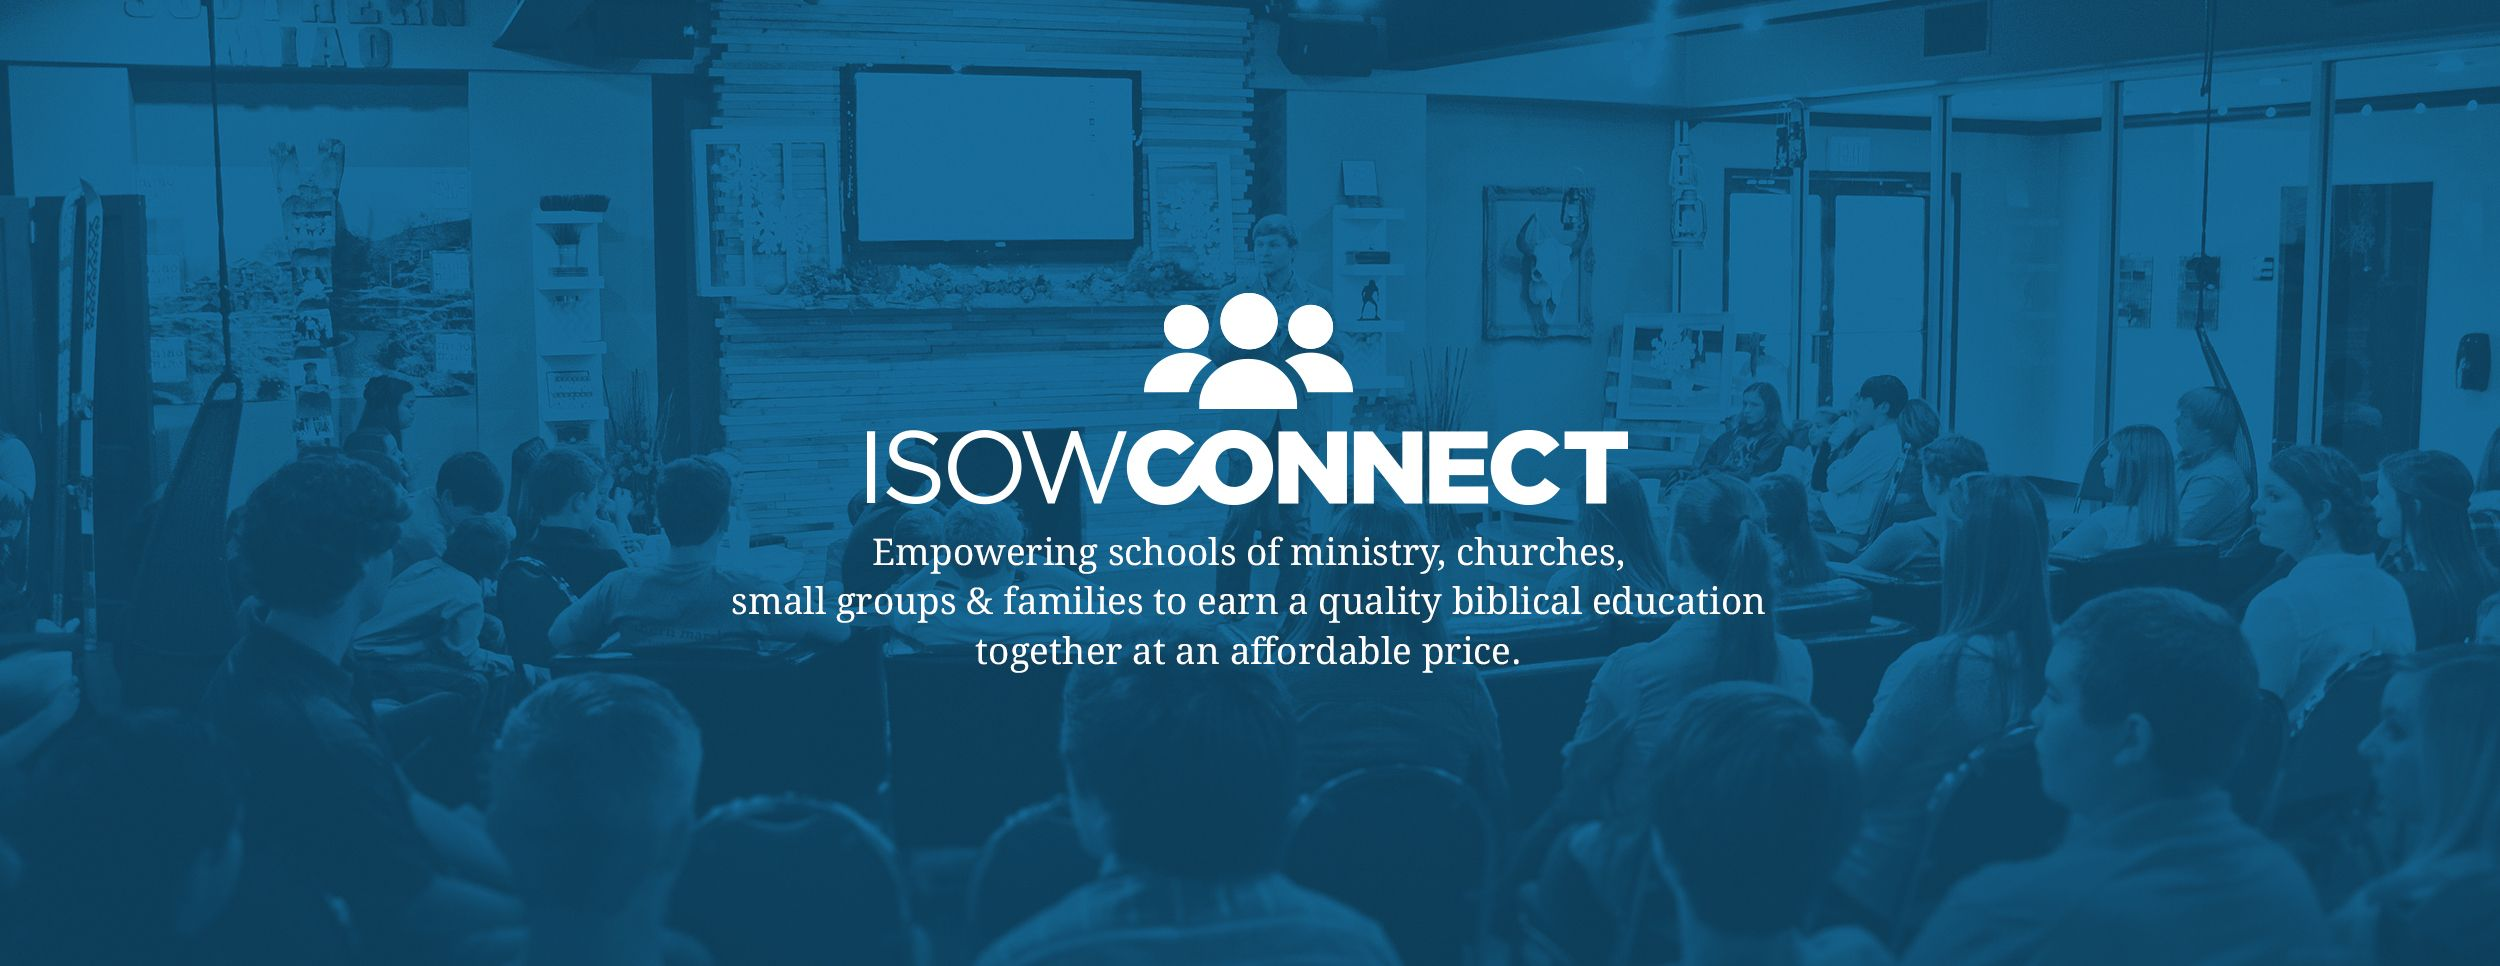 isow_connect_banner_v04-compressor